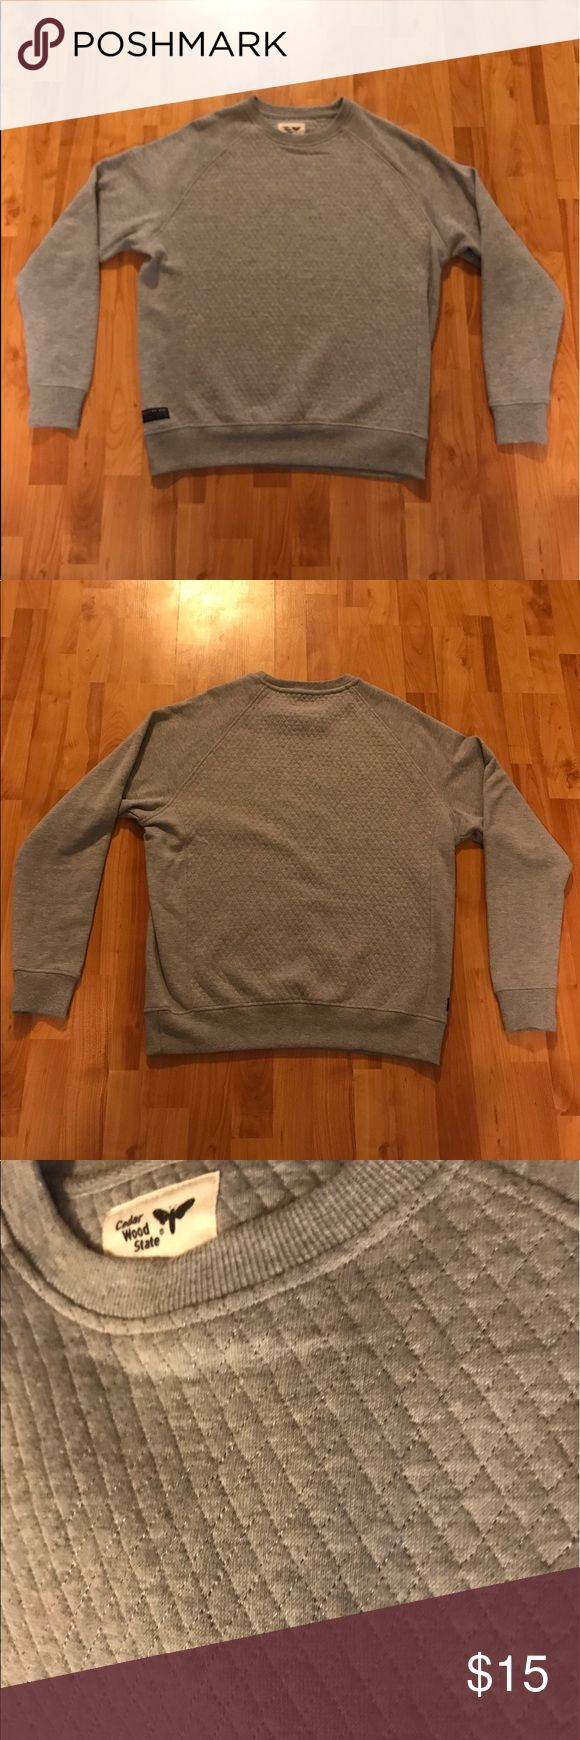 Cedar Wood State Large Gray Crew-Cut Sweatshirt Cedar Wood State is the brand. It's a Gray crew-cut sweatshirt. Crew-cut is the normal neck line. It's a Large but does run a little smaller than most Large sweatshirts. On the torso, it features a diamond stitched pattern (photo3). **willing to bundle or negotiate, but we're looking for close to asking price. Thank you and please share this listing 💁🏻👨🏻❤️ Cedar Wood State Shirts Sweatshirts & Hoodies